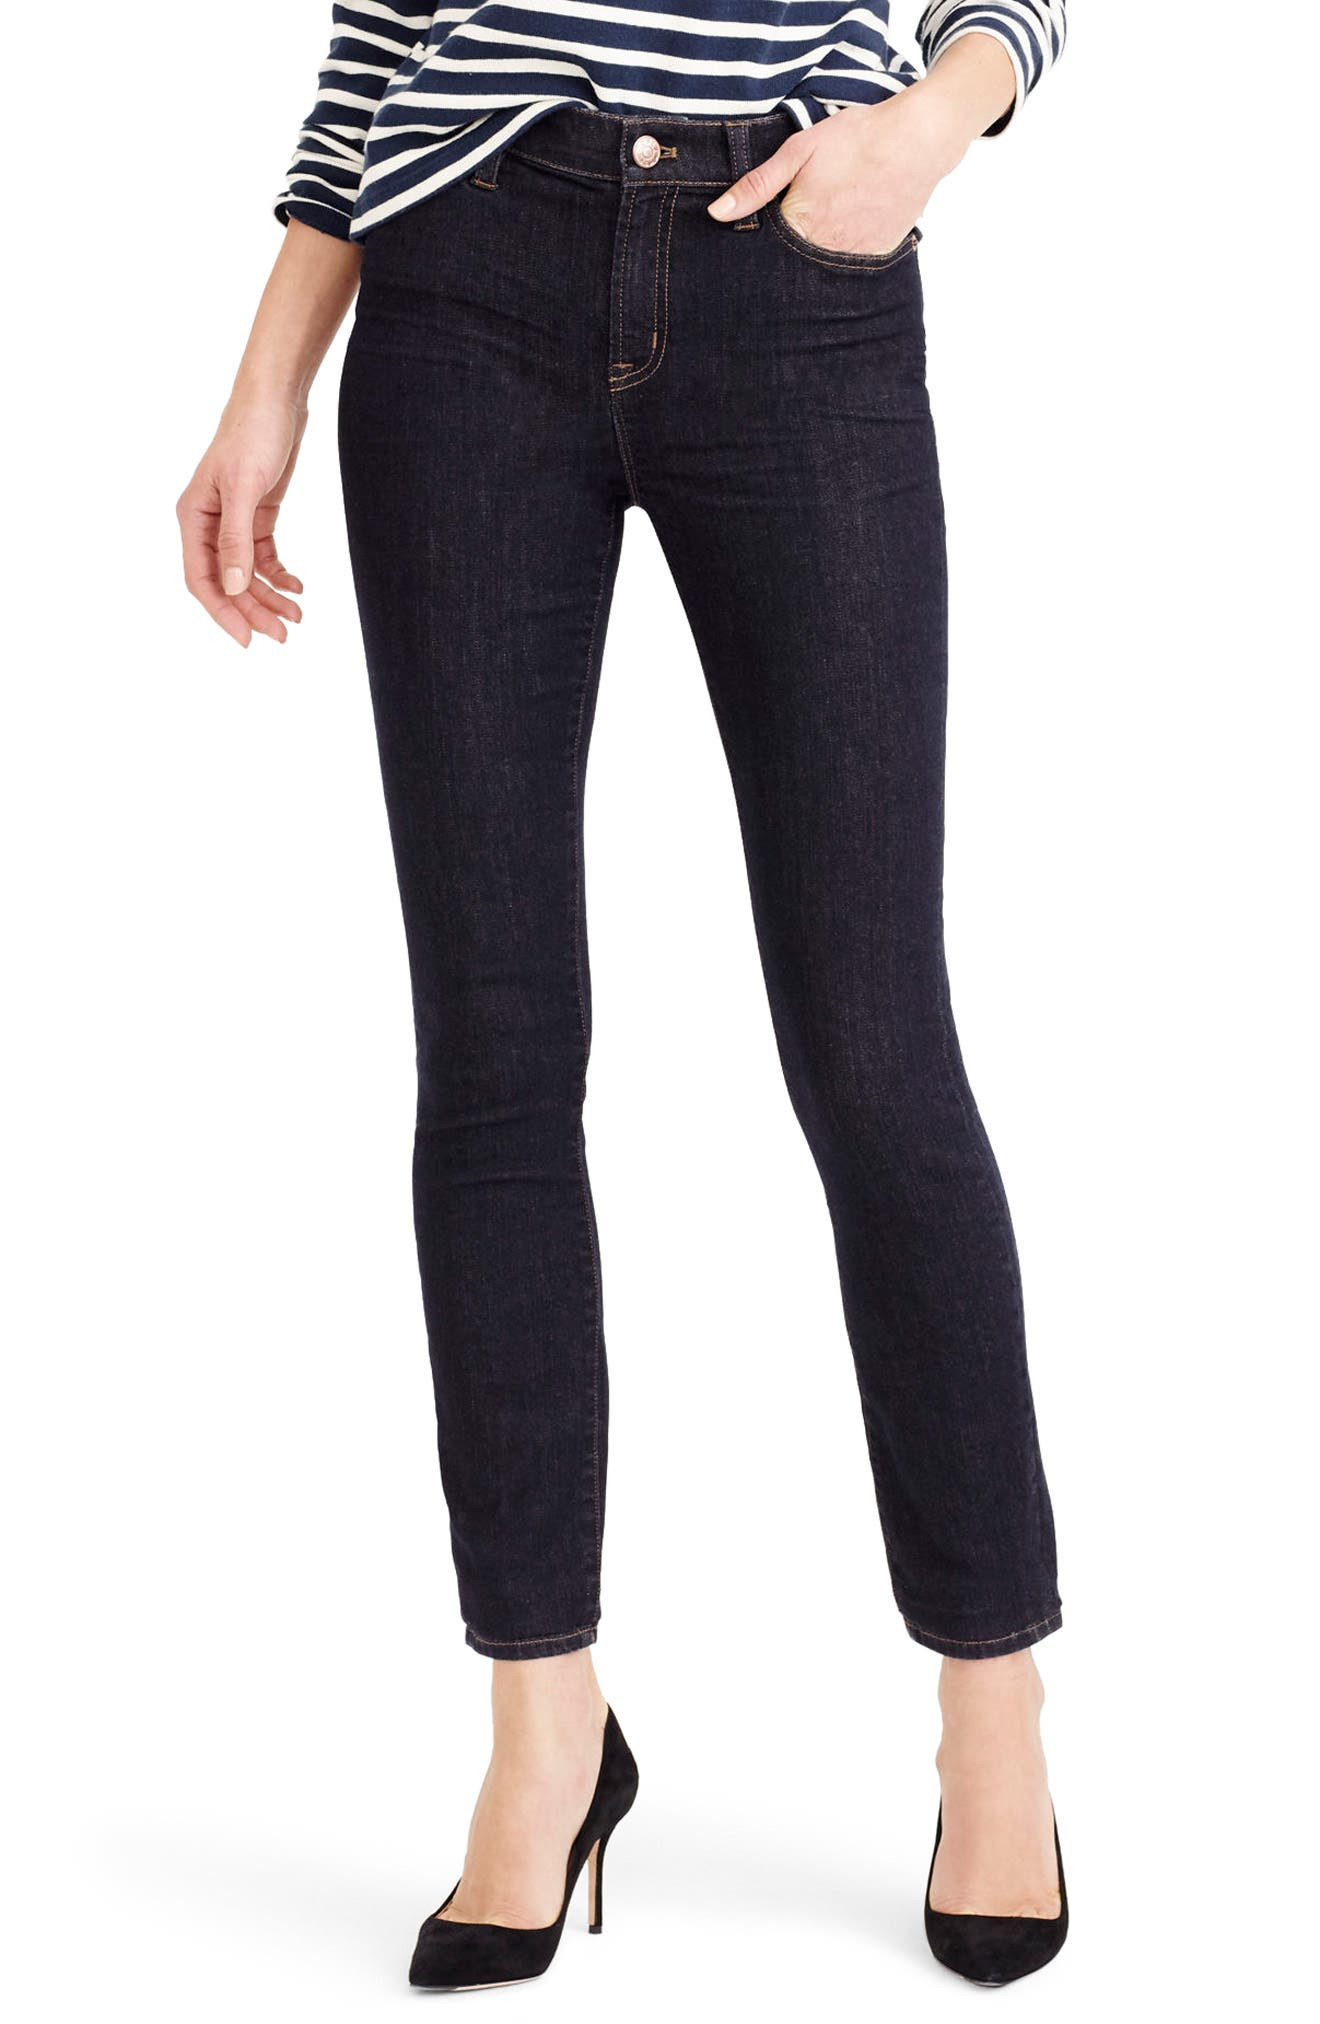 Alternate Image 1 Selected - J.Crew Lookout High Rise Jeans (Resin) (Regular & Petite)